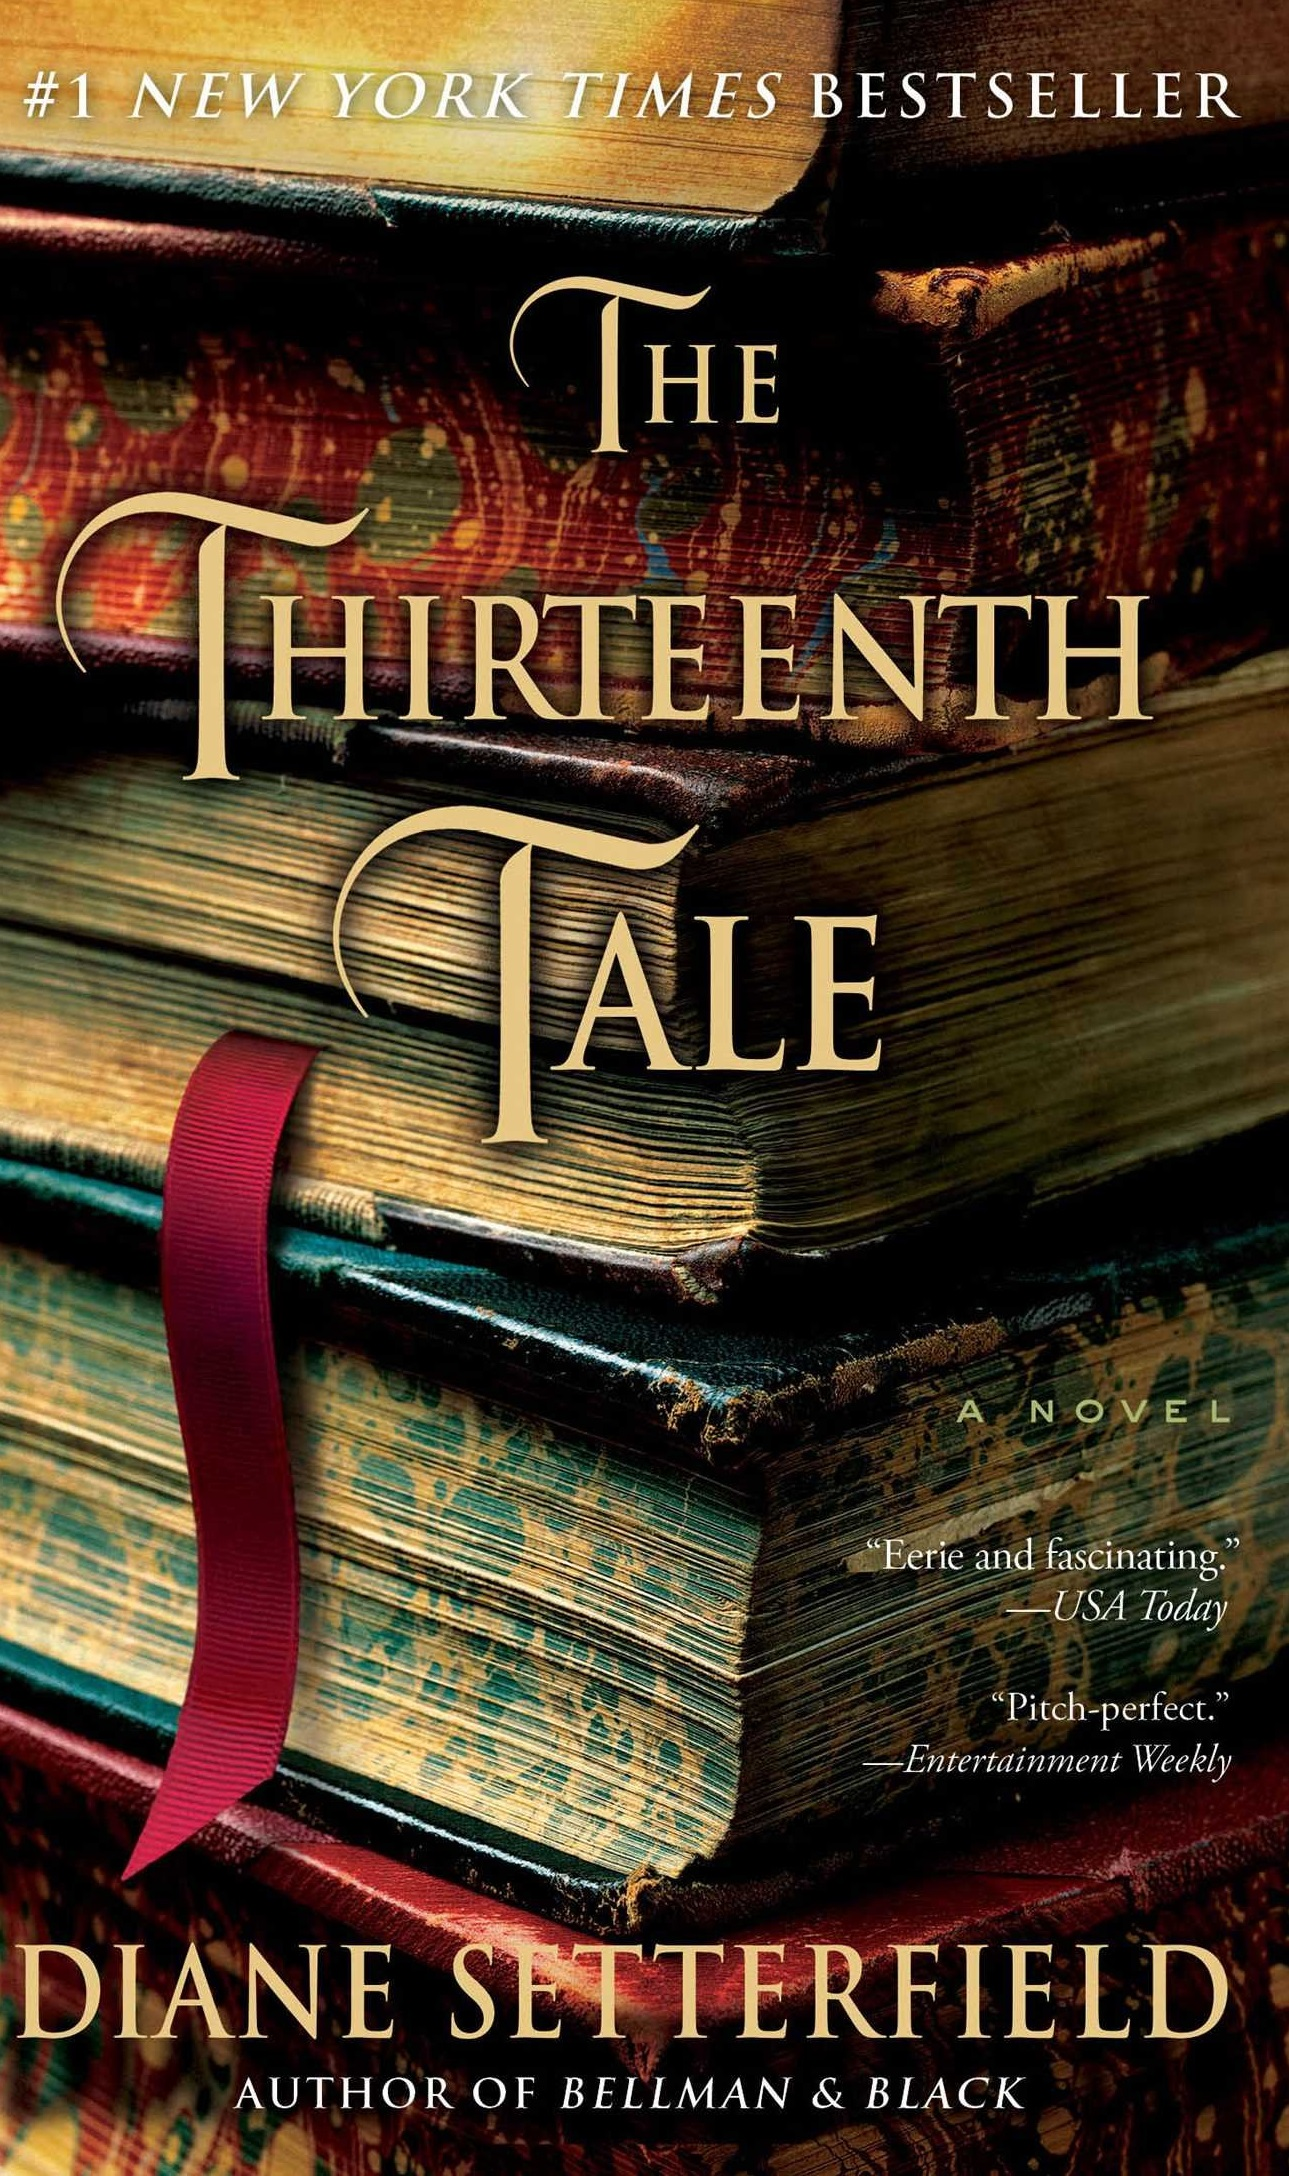 Diane Setterfield, The Thirteenth Tale (Trinajsta zgodba)